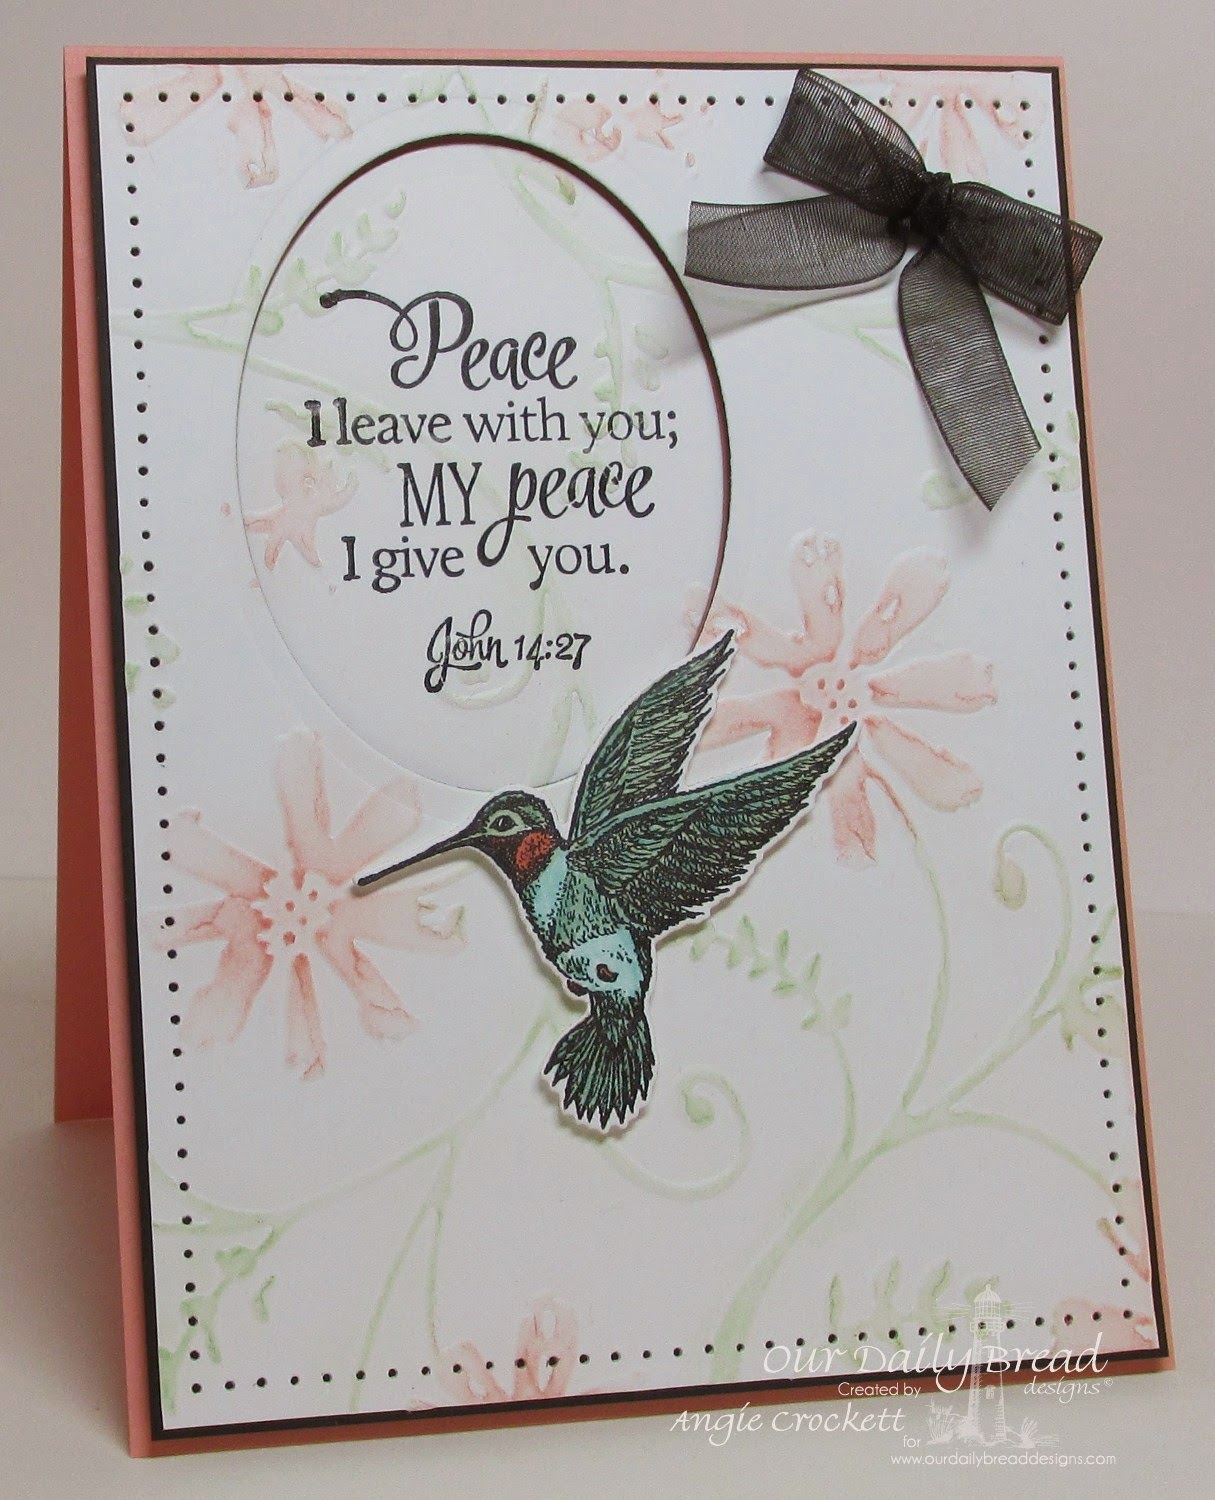 ODBD Scripture Collection 13, Hummingbird, ODBD Custom Hummingbird Die, Card Designer Angie Crockett